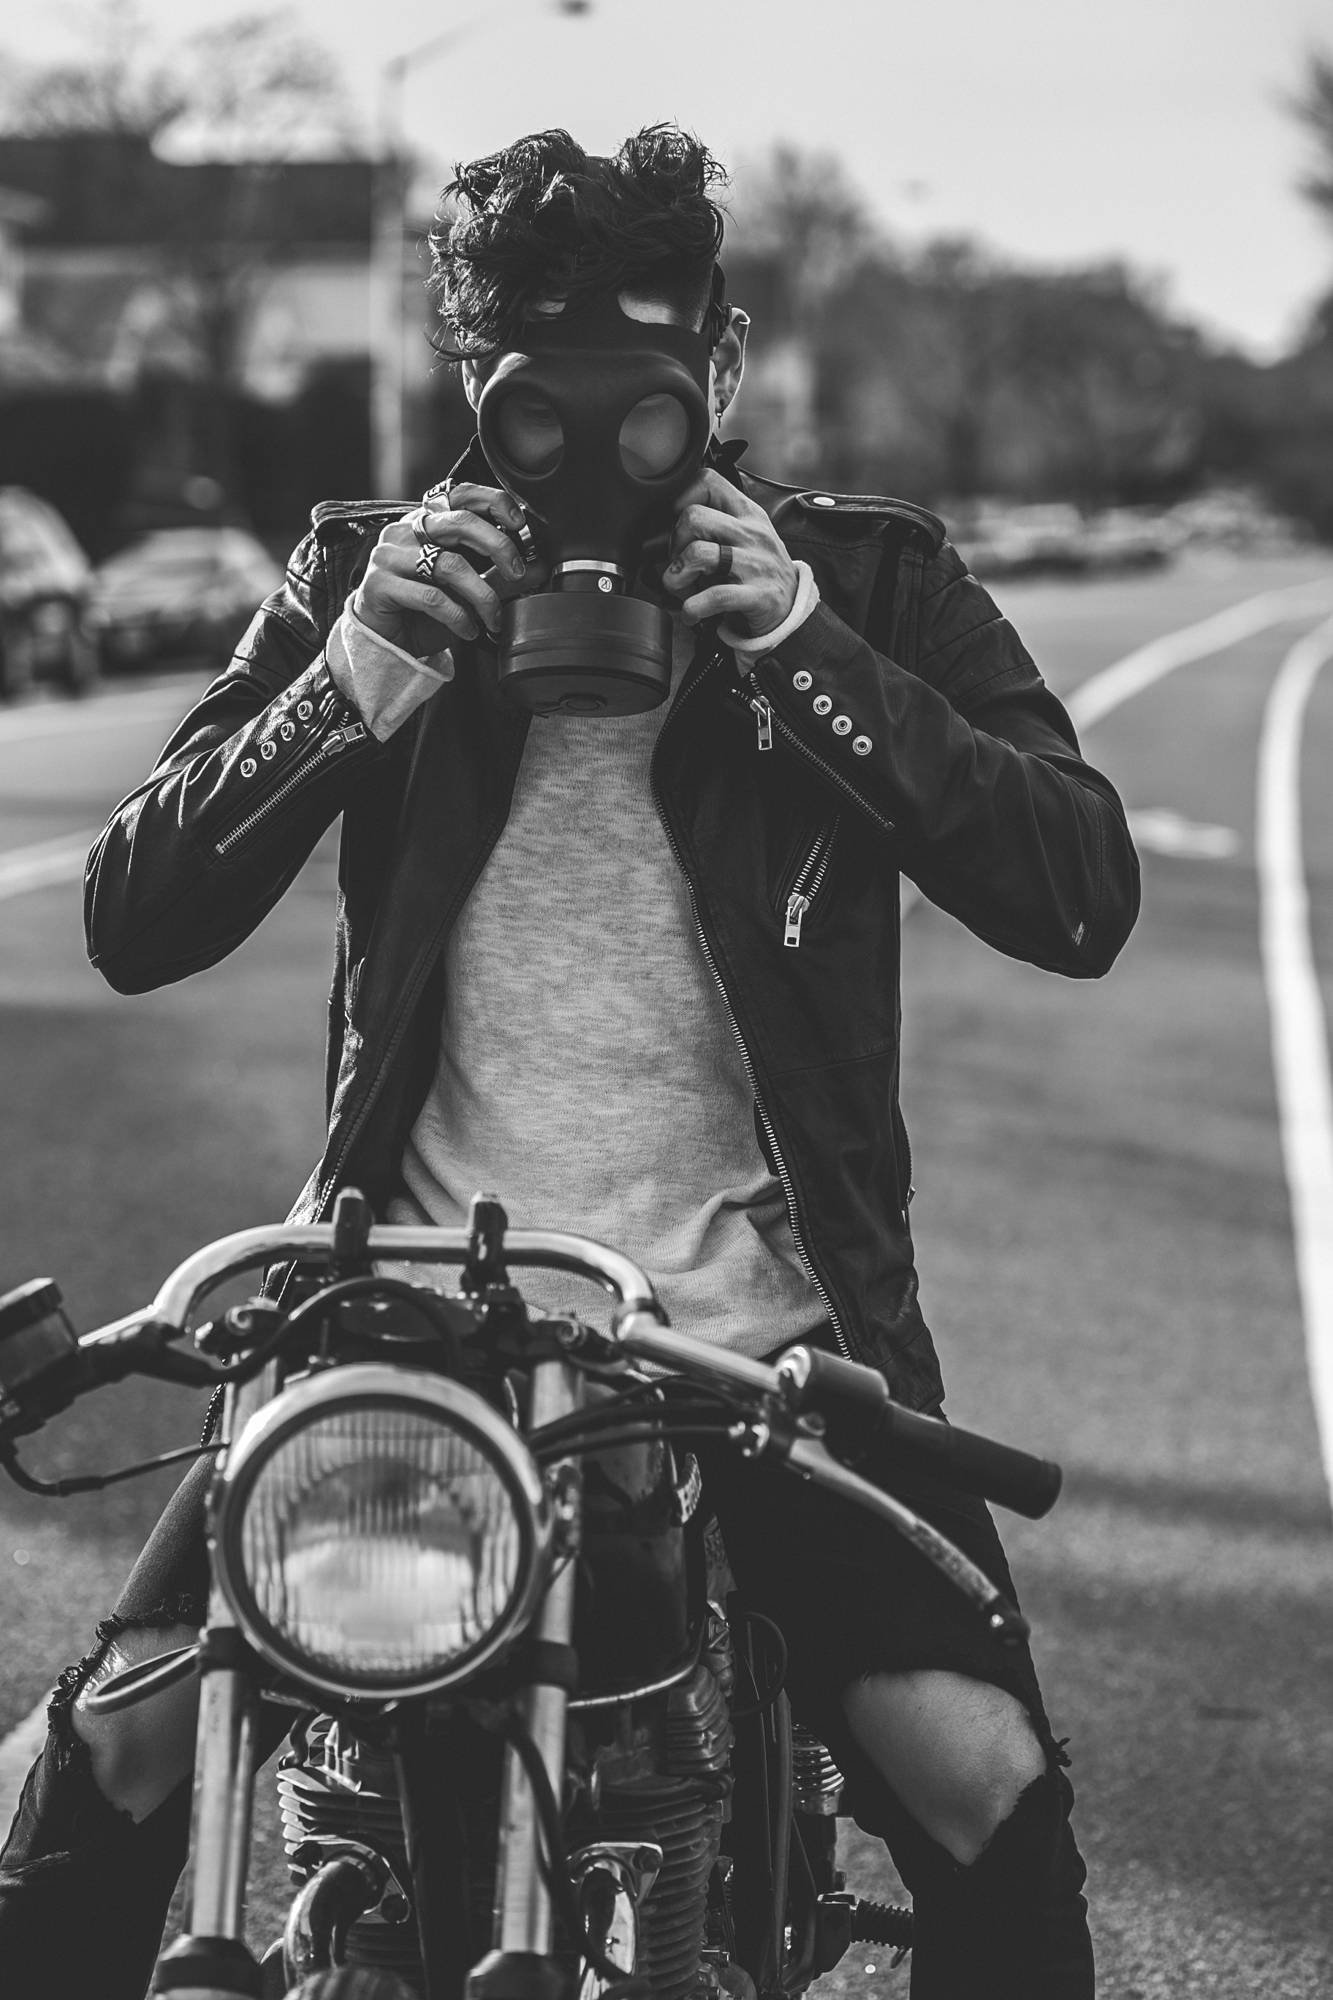 tattoos-  motorcycles-caferacers